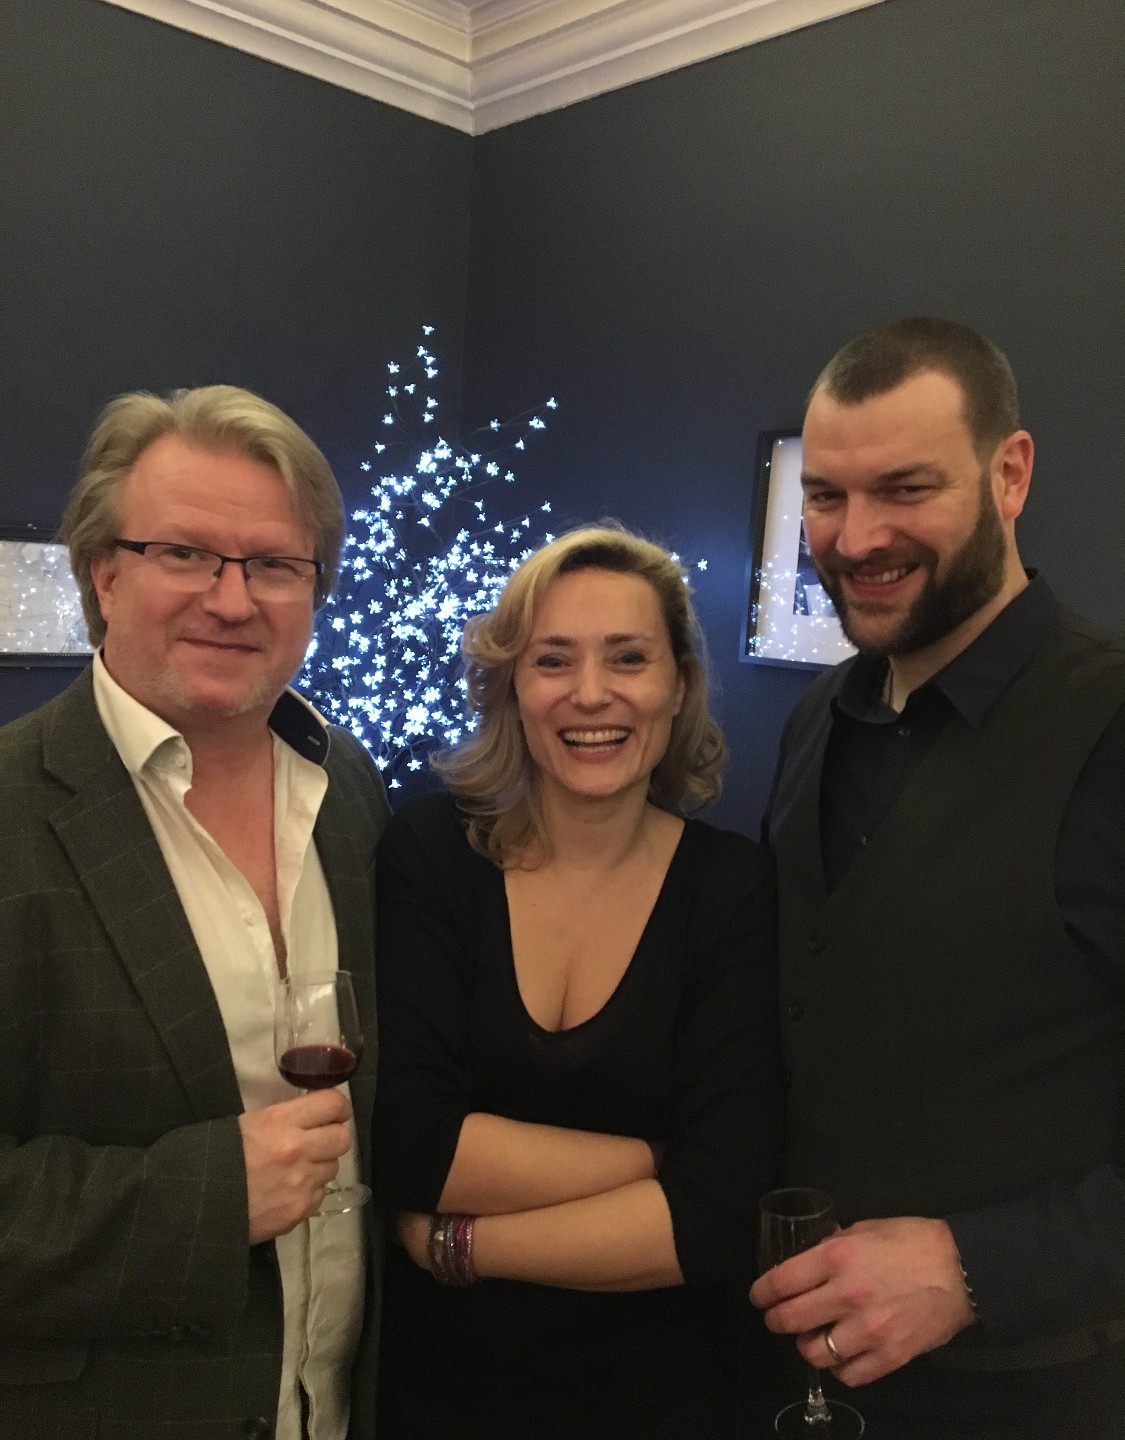 Jay Johnstone (Artist), Francesca T Barbini (you know me, right?) and Robert S Malan (Luna Senior Editor and Writer).